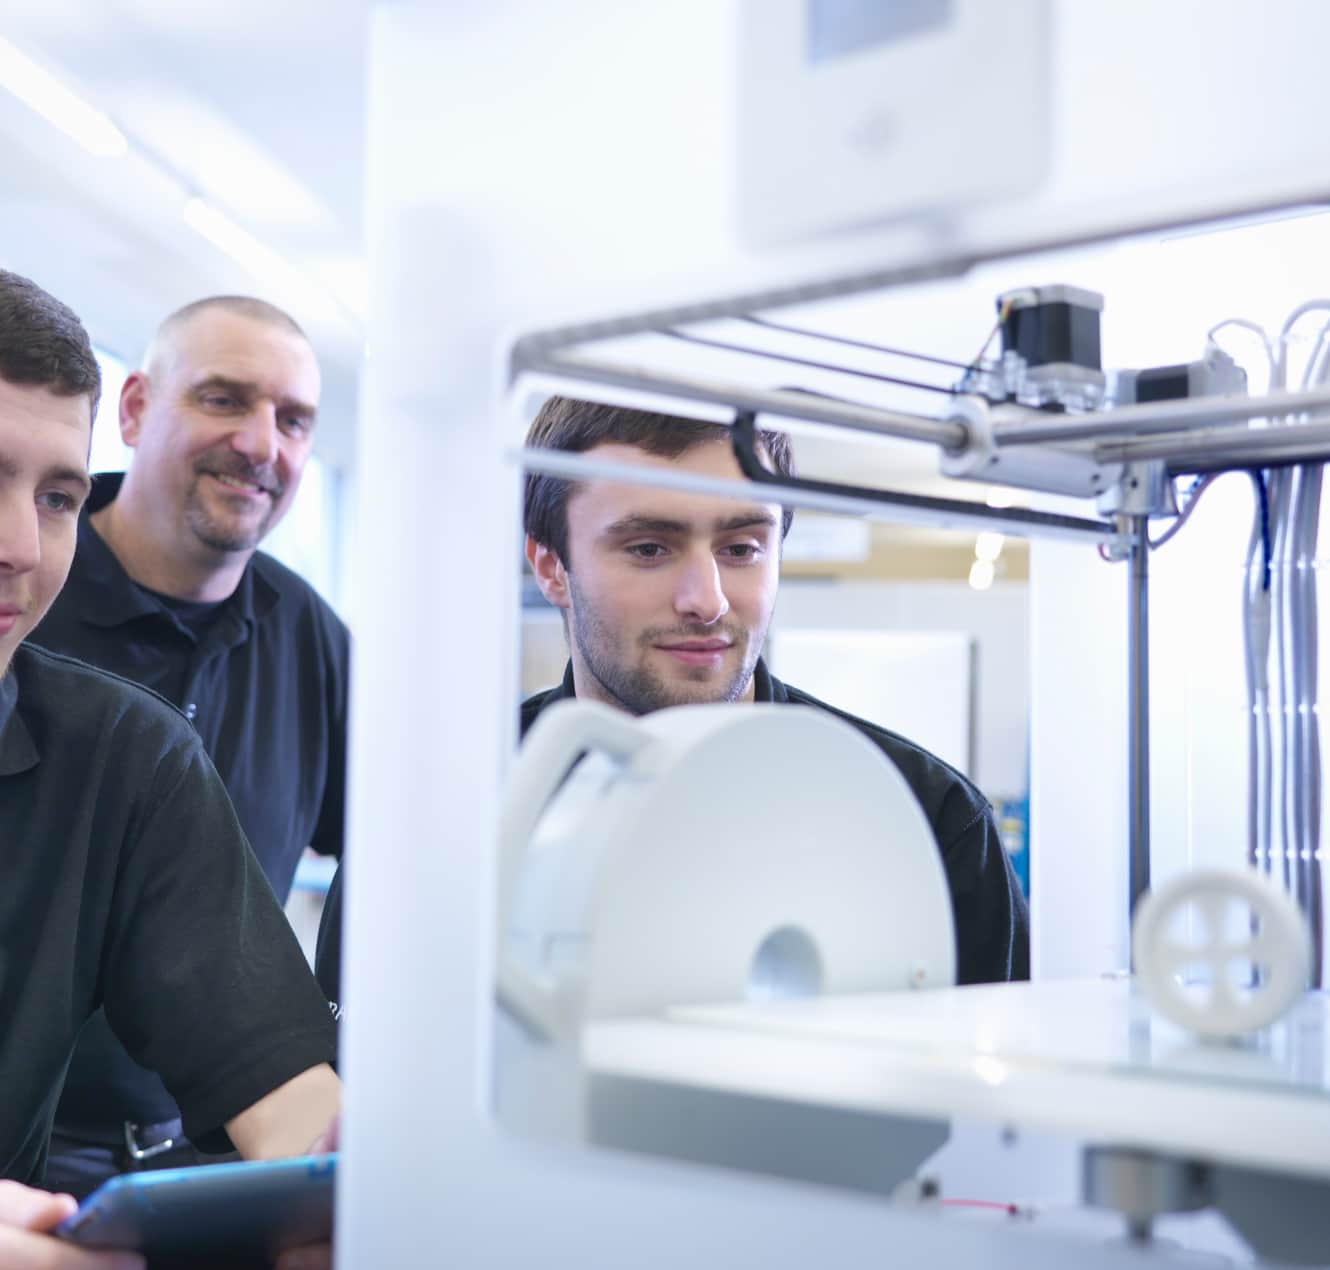 3-D Printing of Medical Devices